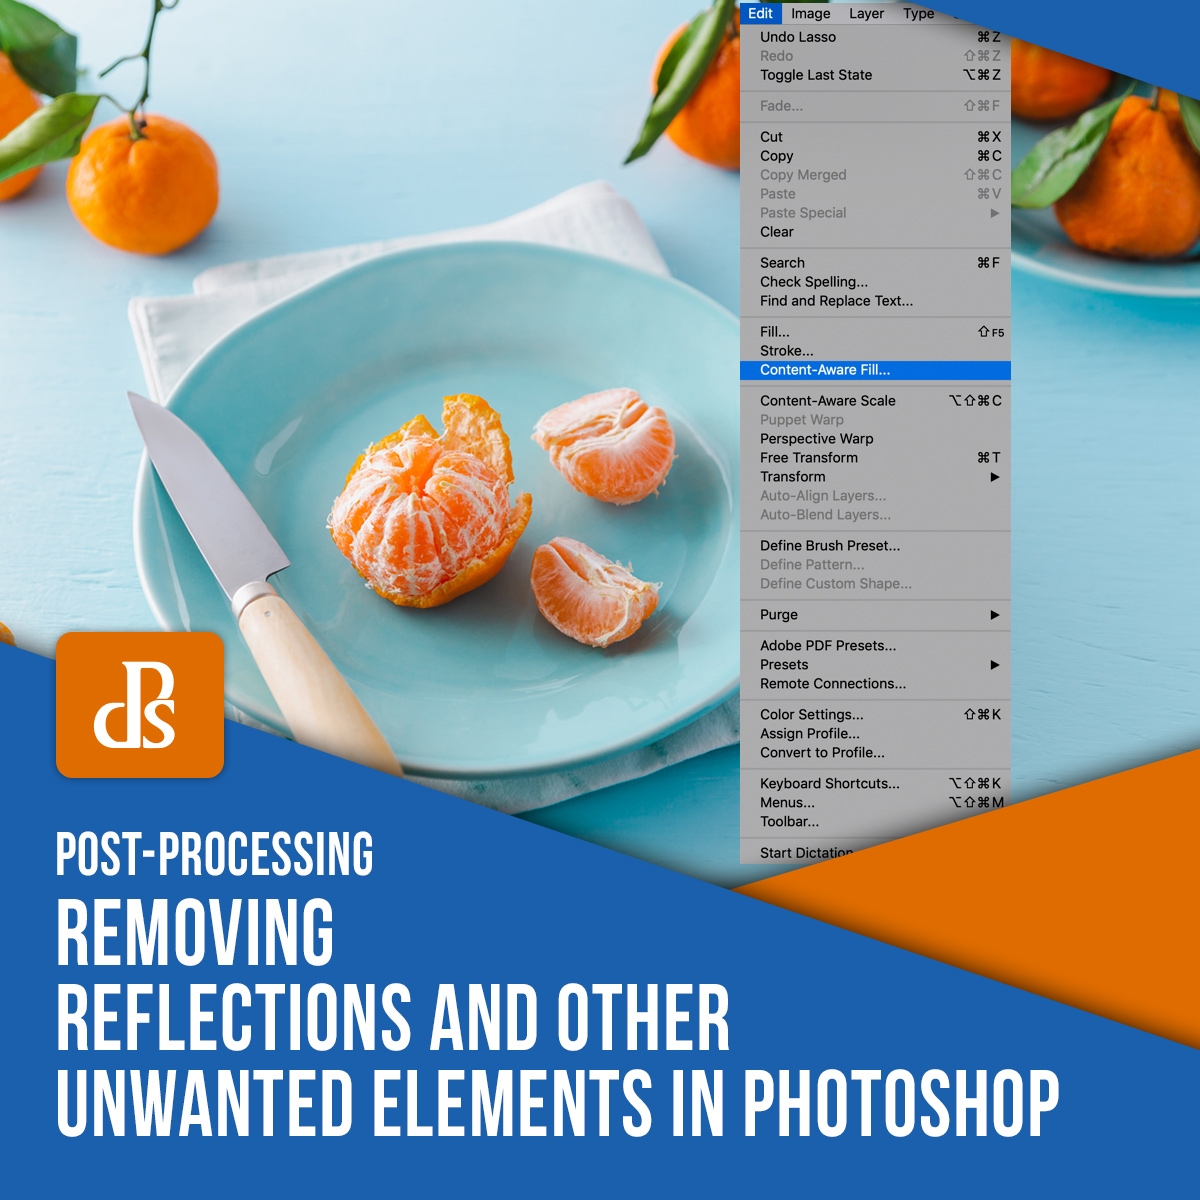 tips for removing reflections in Photoshop featured image